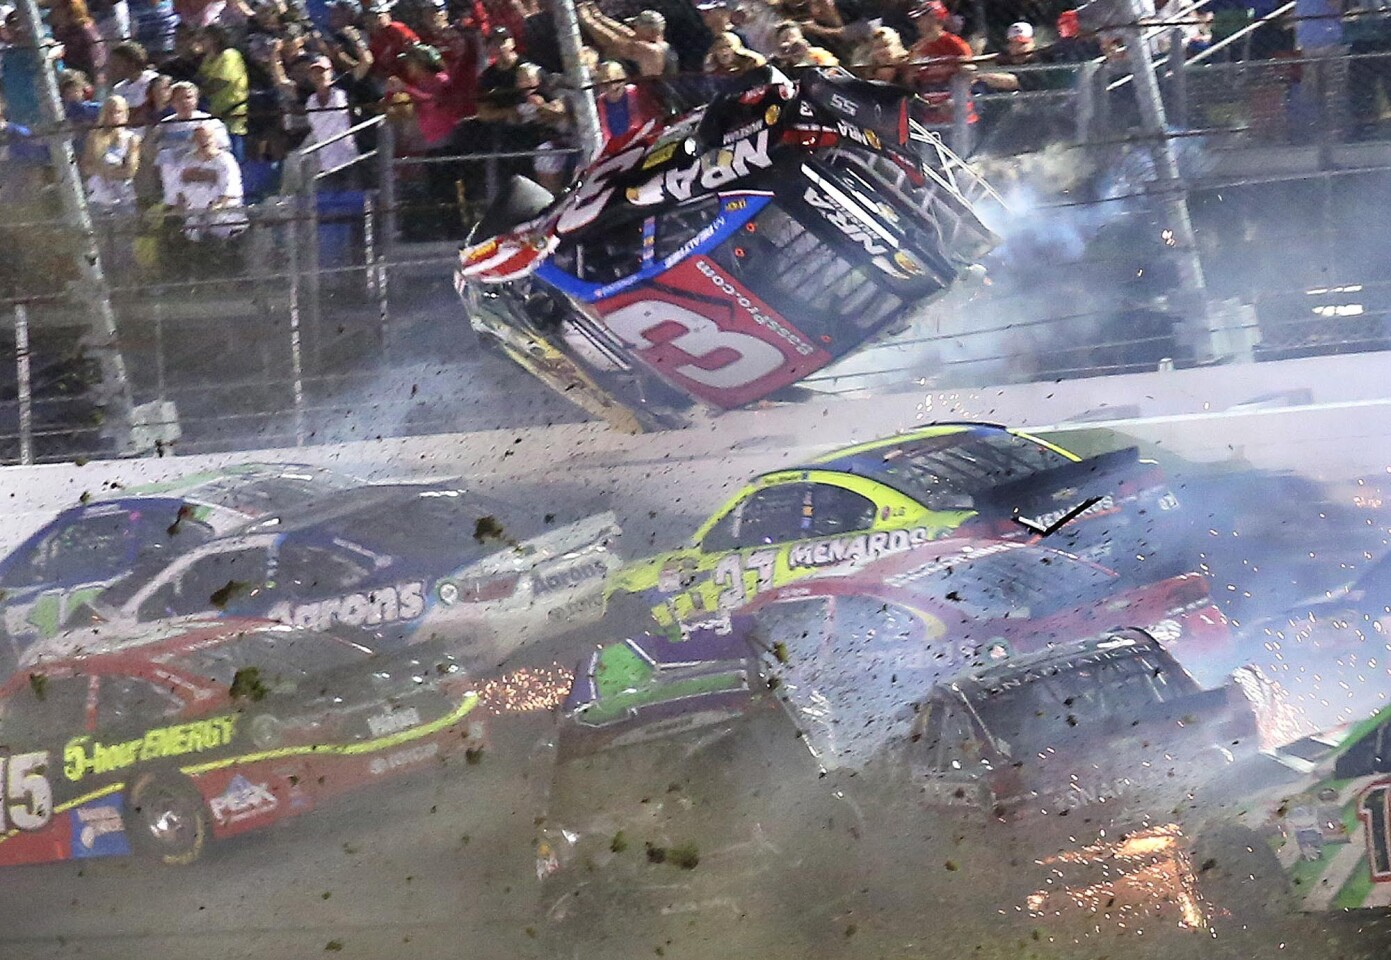 Austin Dillon (3) goes upside down as he crashes in a dramatic wreck during the Coke Zero 400 NASCAR Sprint Cup race at Daytona International Speedway on Sunday, July 5, 2015. (Stephen M. Dowell/Orlando Sentinel)